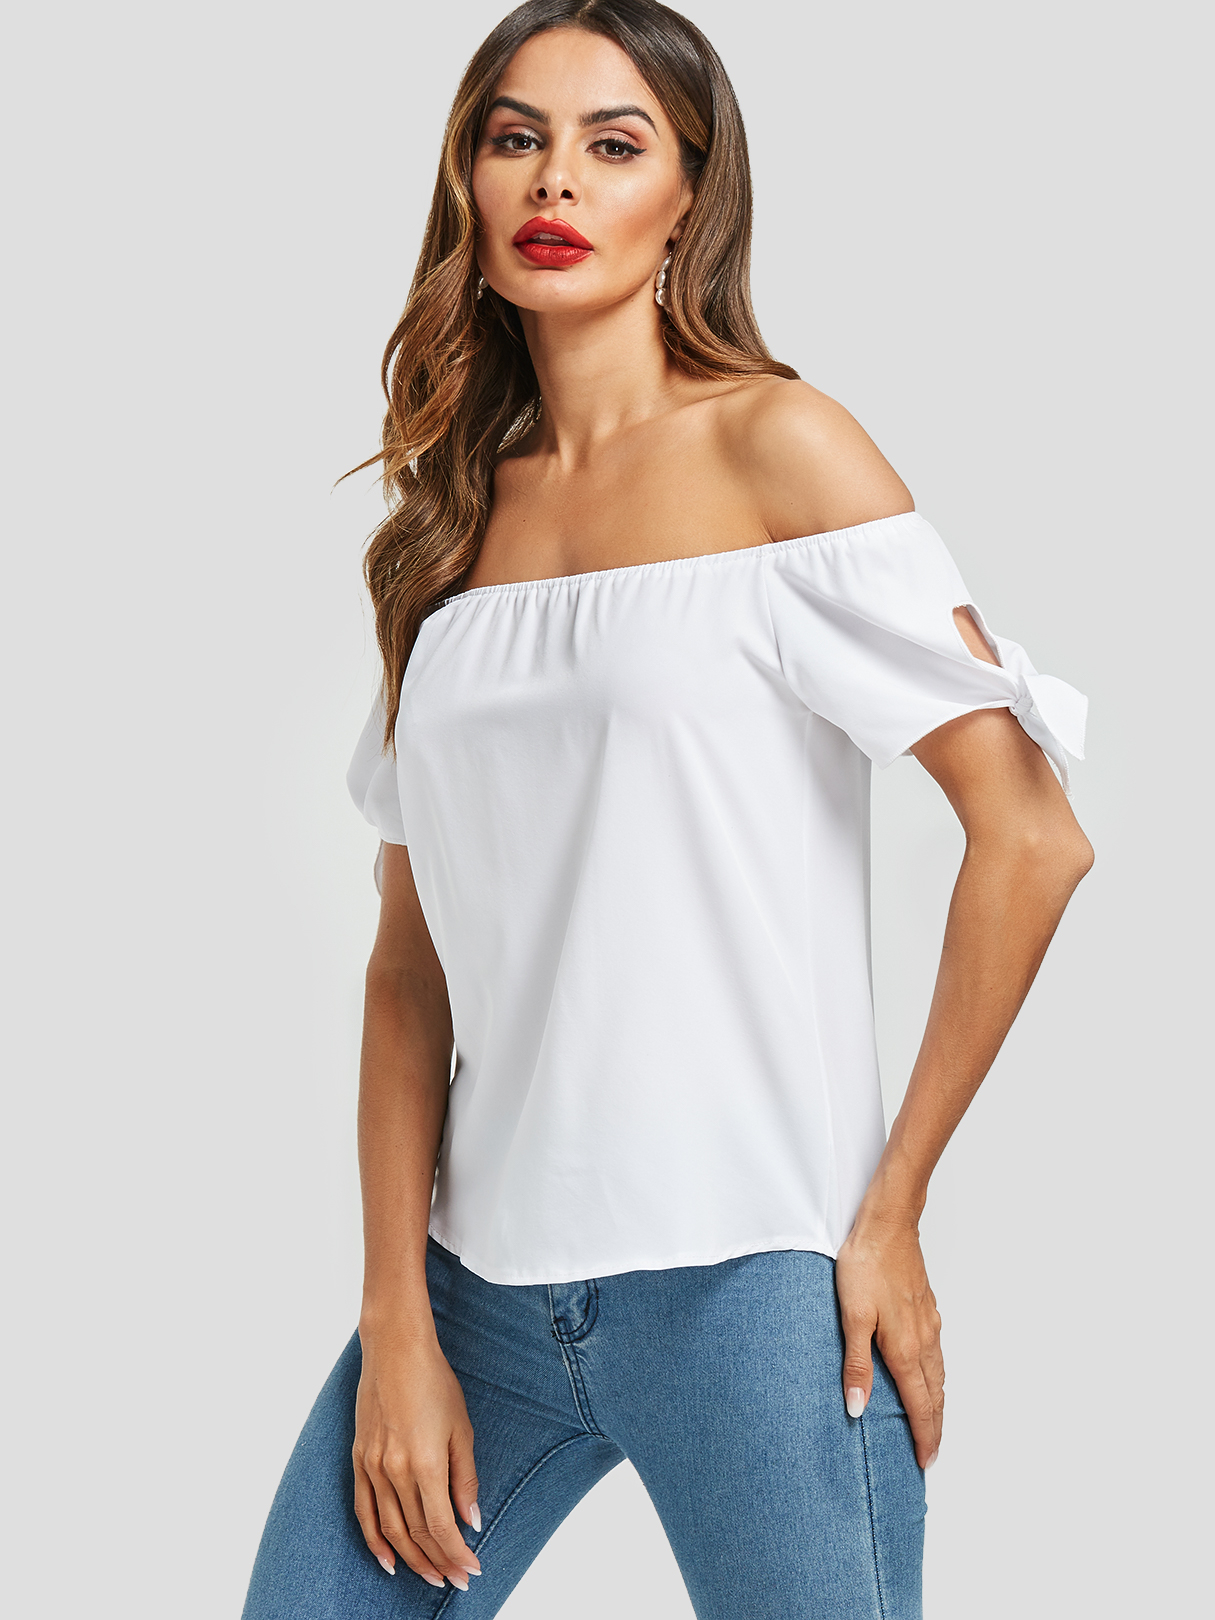 White Self-tie Design Off The Shoulder Top